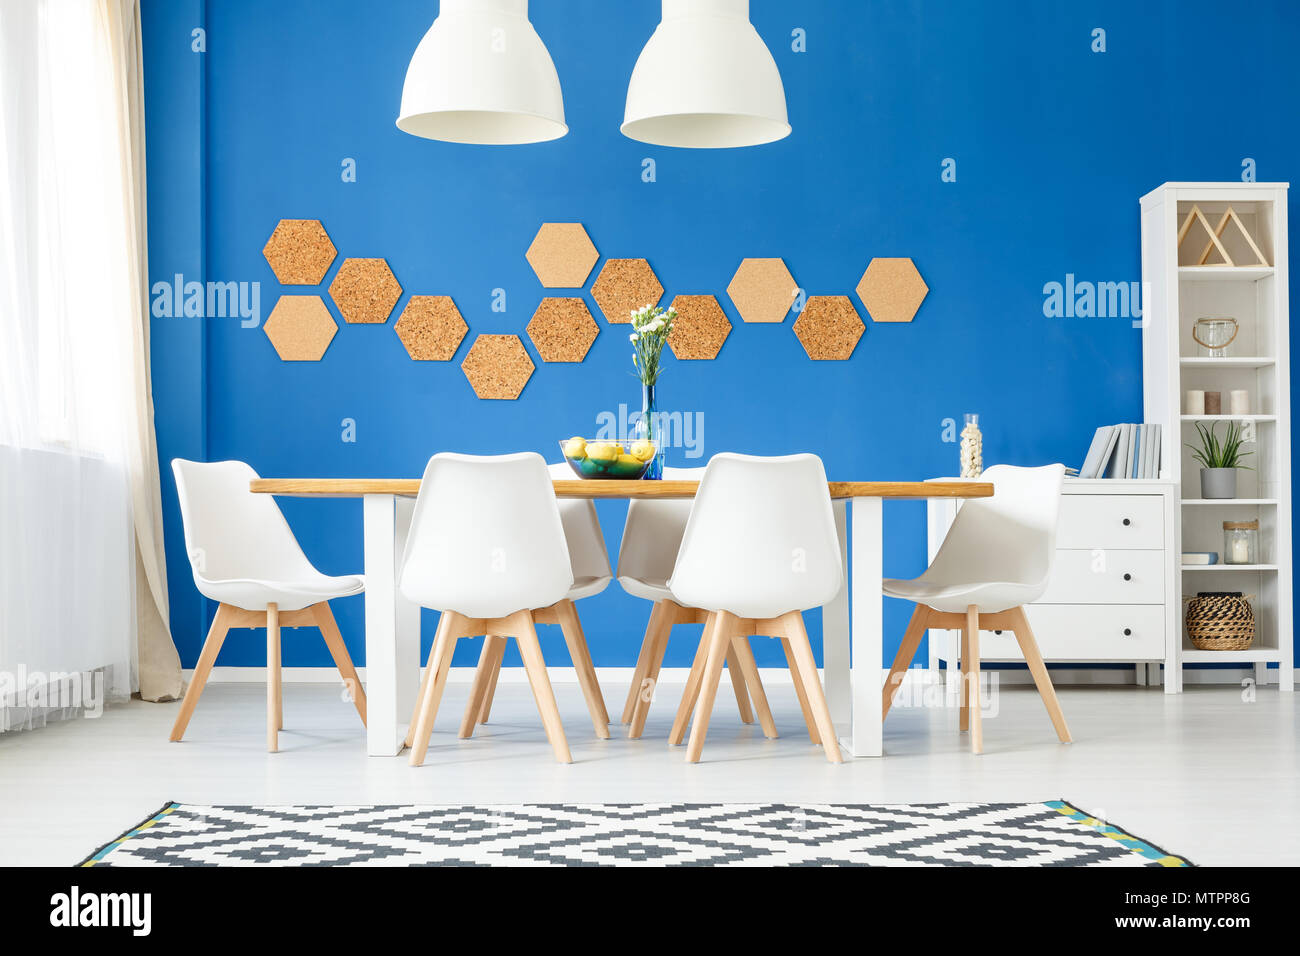 Stylish modern dining room with royal blue wall  wooden table  white     Stylish modern dining room with royal blue wall  wooden table  white designer  chairs  lamps  rug and honeycomb cork wall